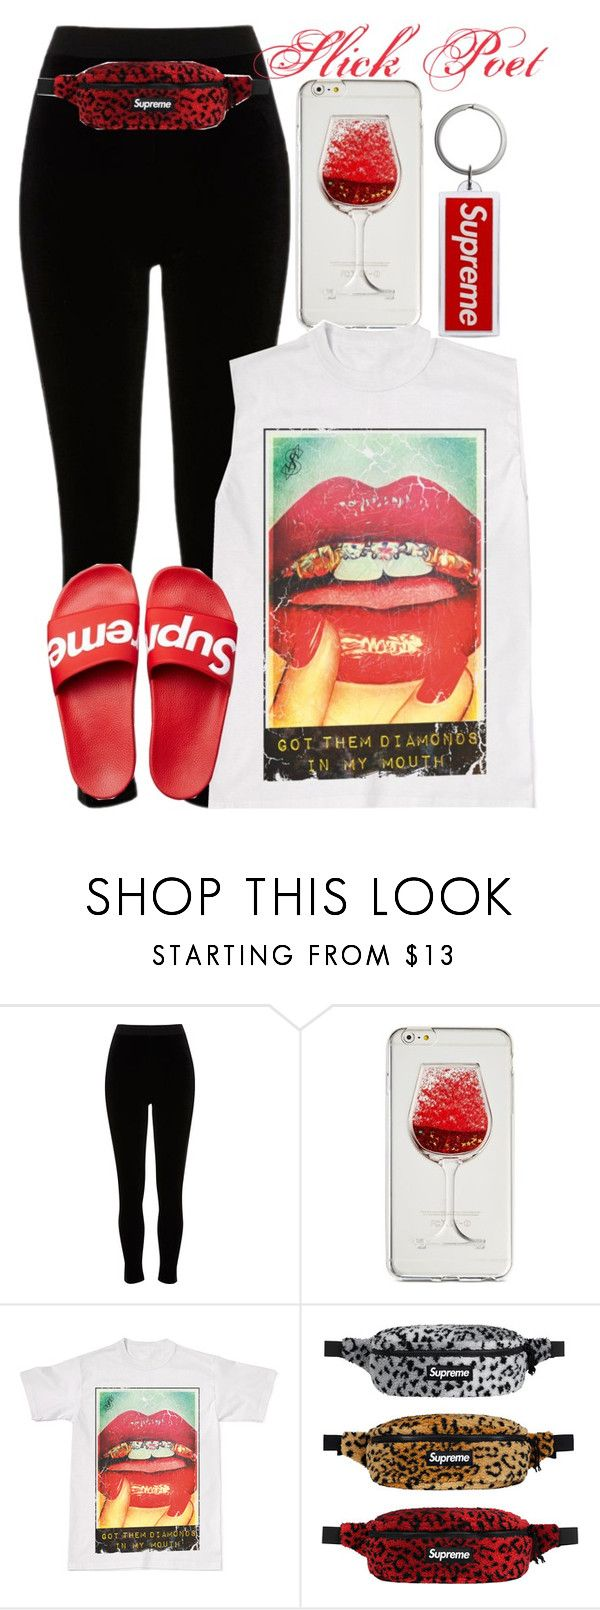 """Supreme Chill"" by slickpoet ❤ liked on Polyvore featuring River Island, Celebrate Shop and OBEY Clothing"